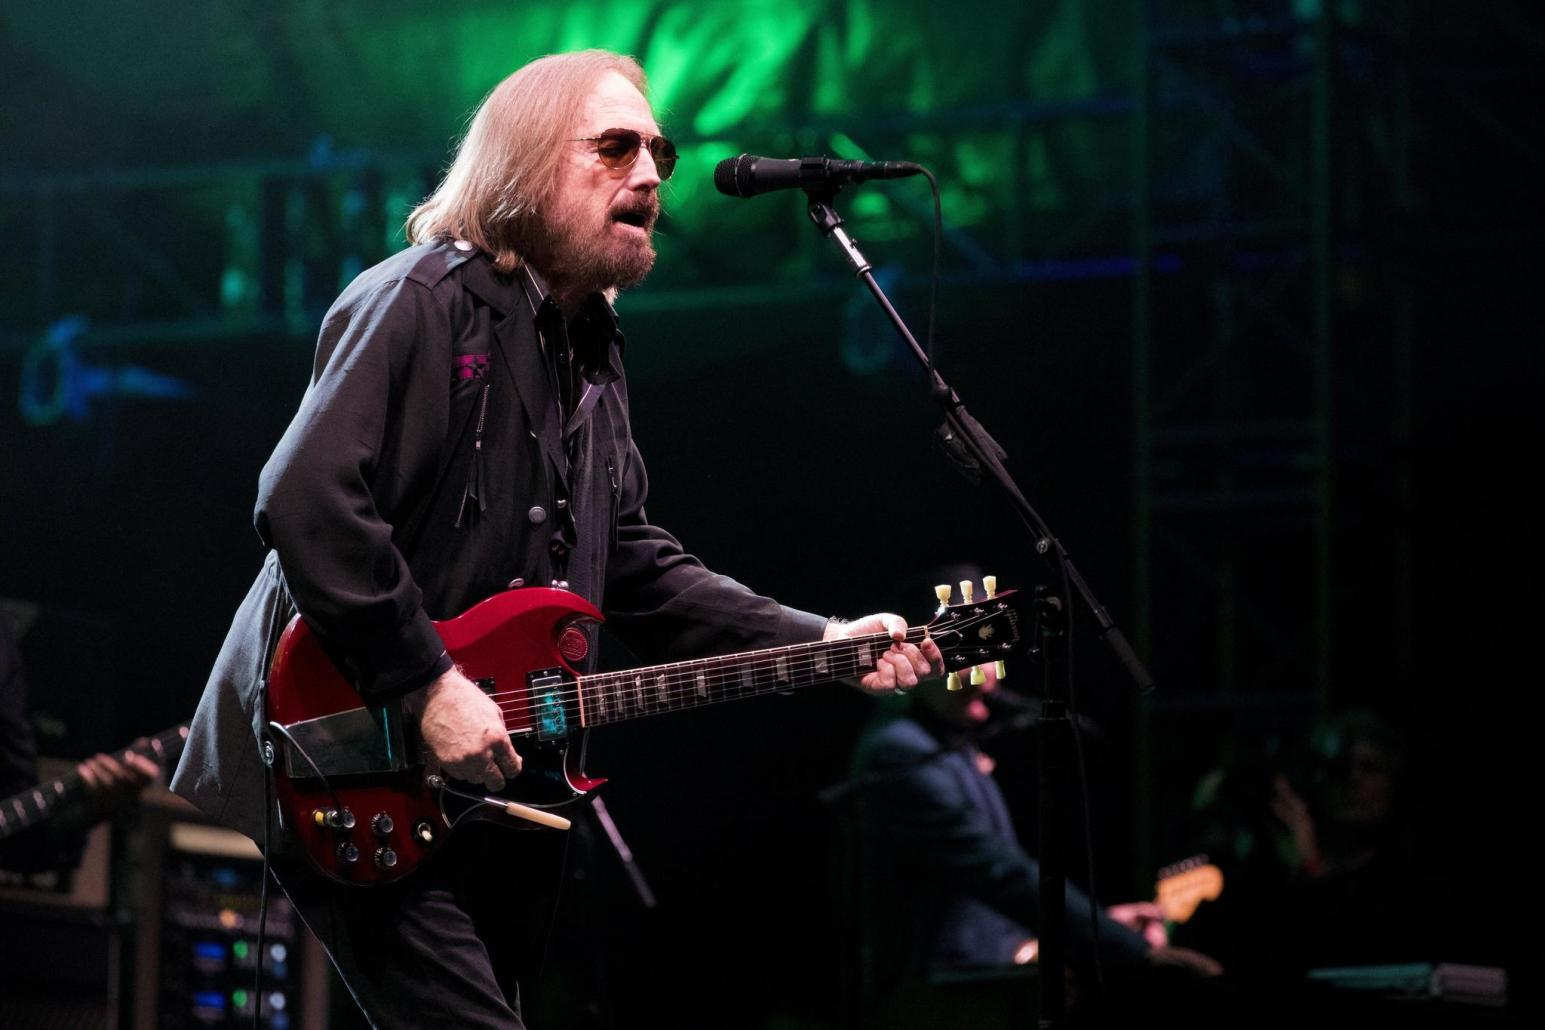 Tom Petty jamming out